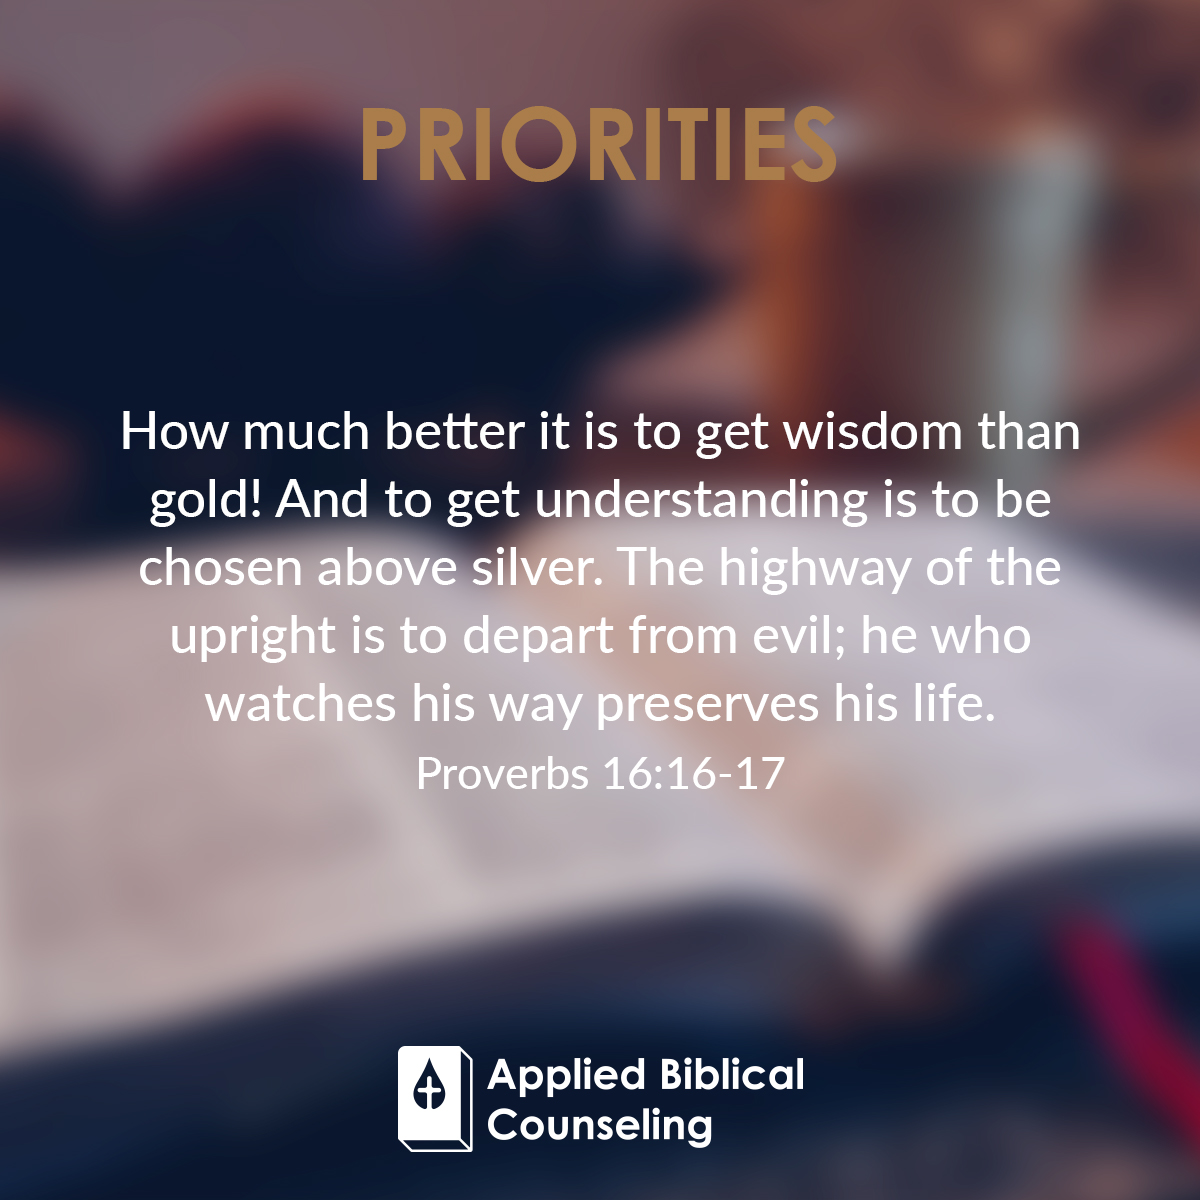 Applied Biblical Counseling Facebook w21 Priorities 4